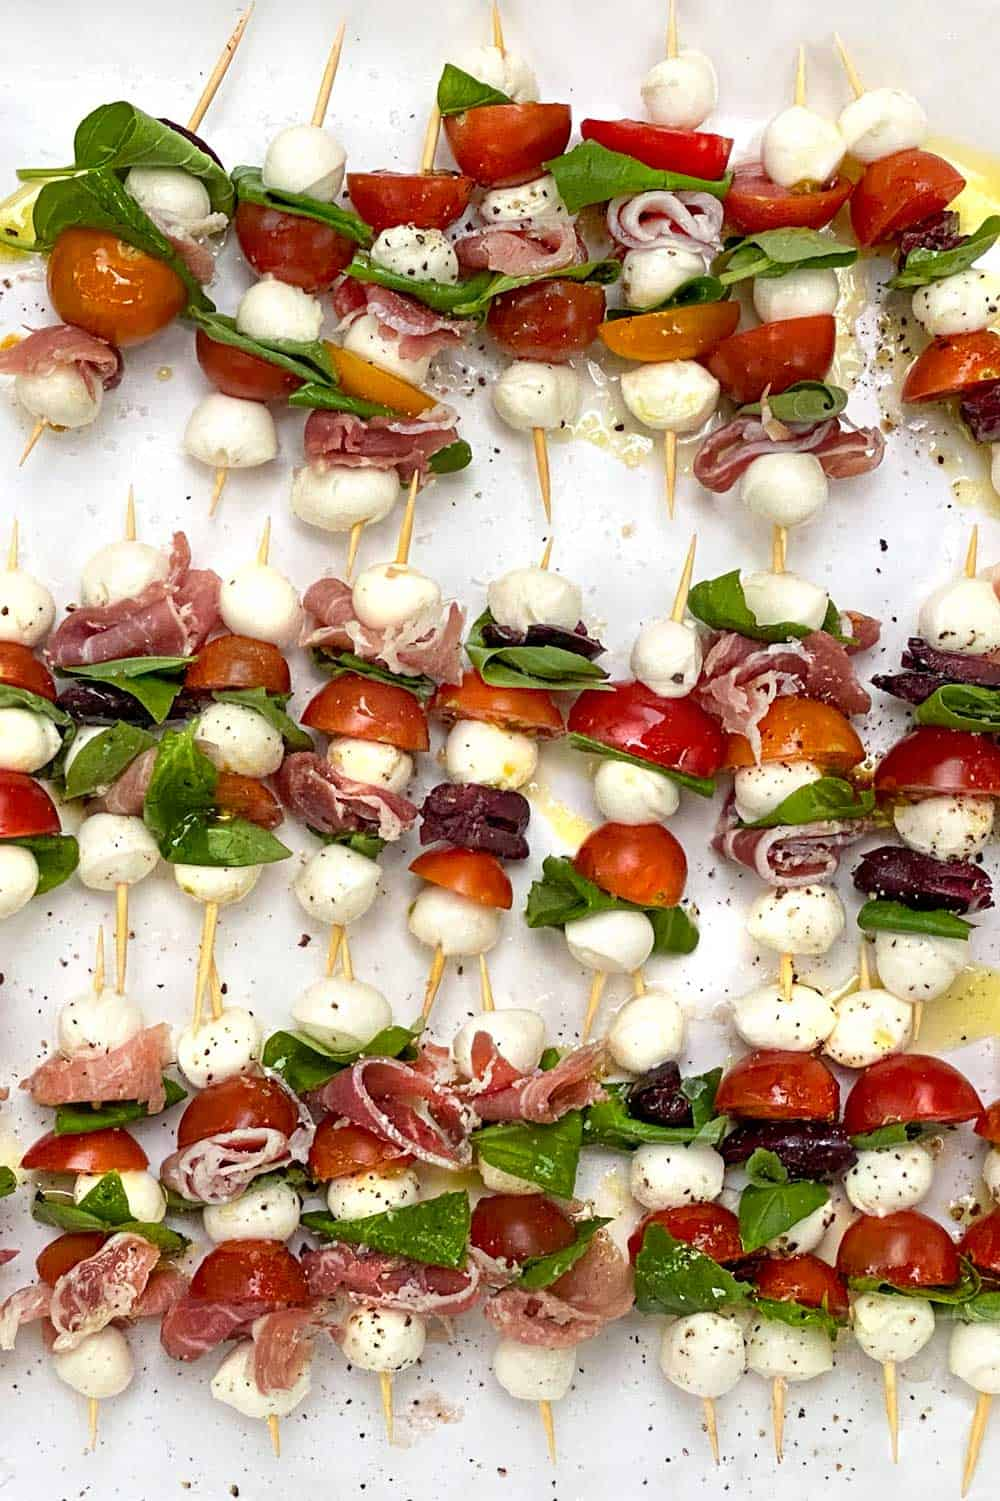 mini caprese skewers with mini mozzarella balls, cherry tomatoes and fresh basil leaves